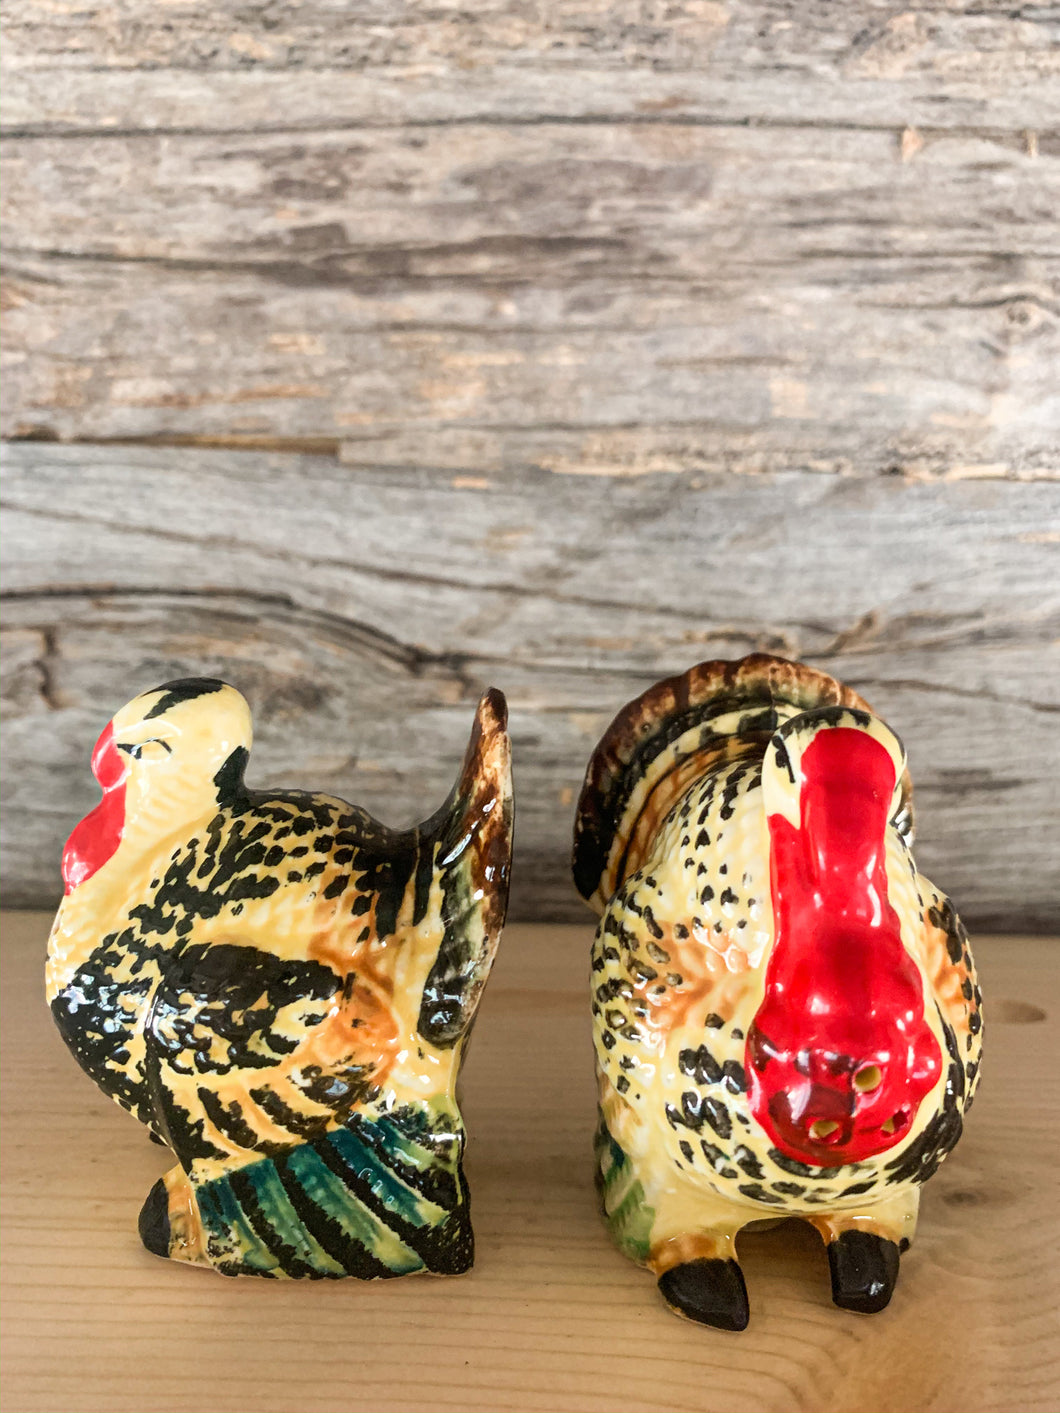 Turkey Salt and Pepper Shakers